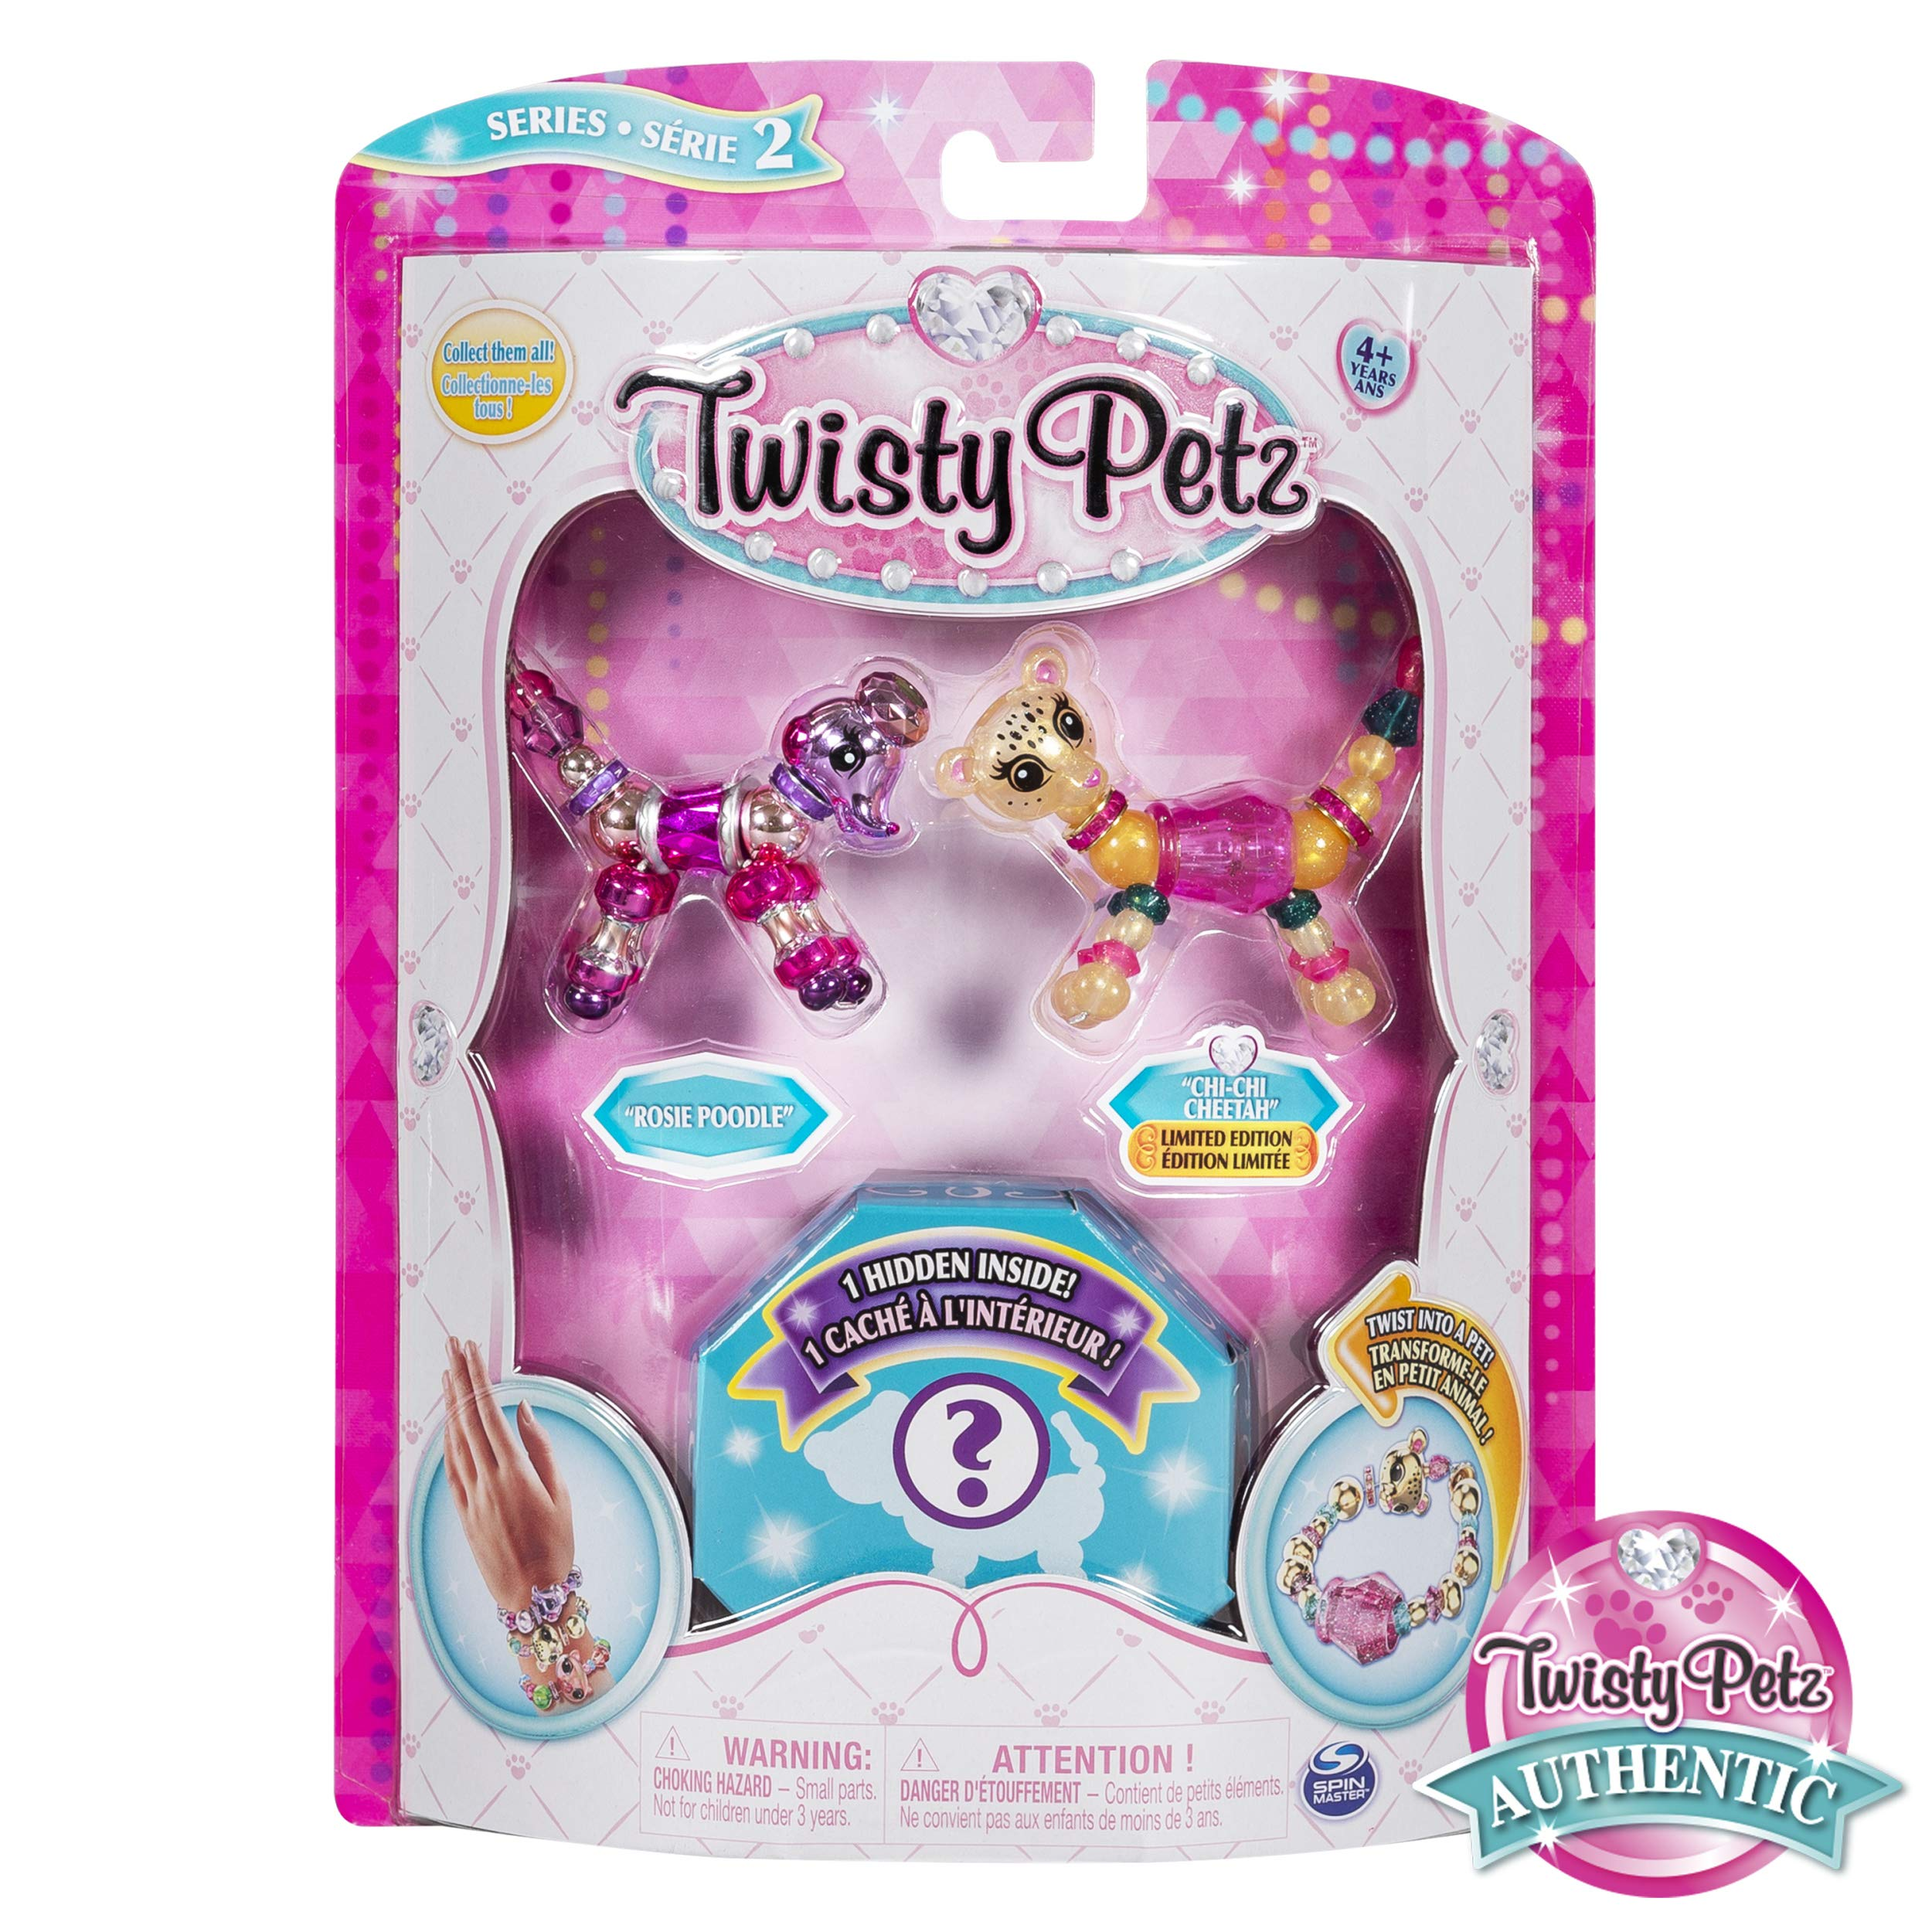 Twisty Petz, Series 2 3 Pack, Rosie Poodle, Chi-Chi Cheetah & Surprise Collectible Bracelet Set For Kids by Twisty Petz